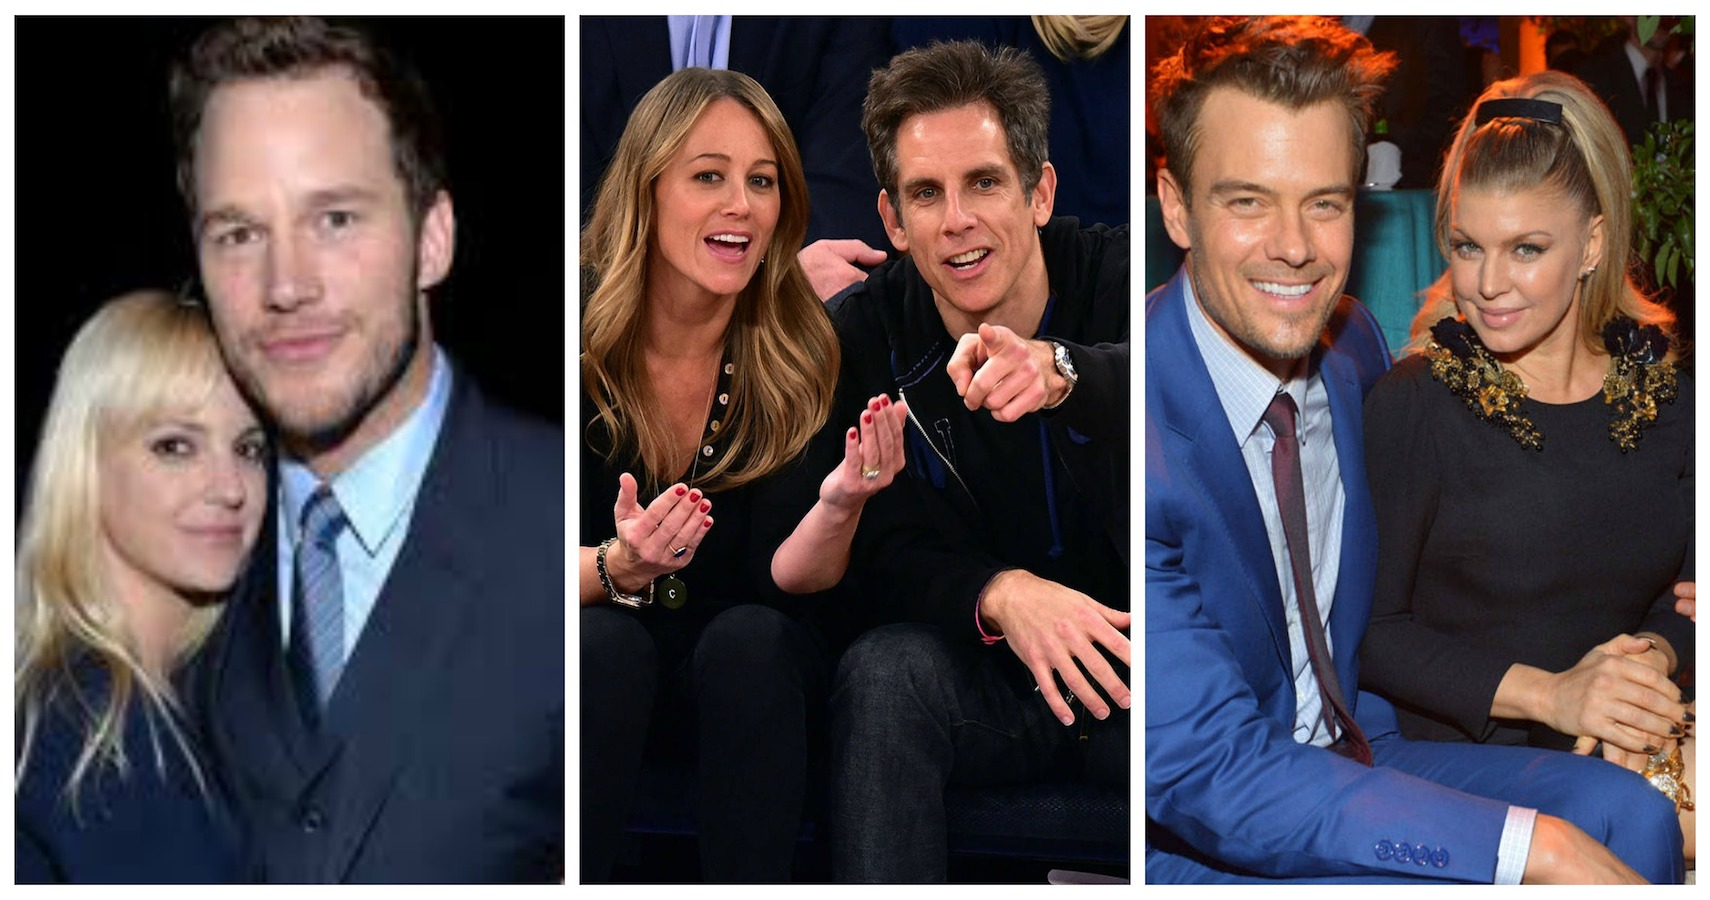 What celebrity couple are you facebook